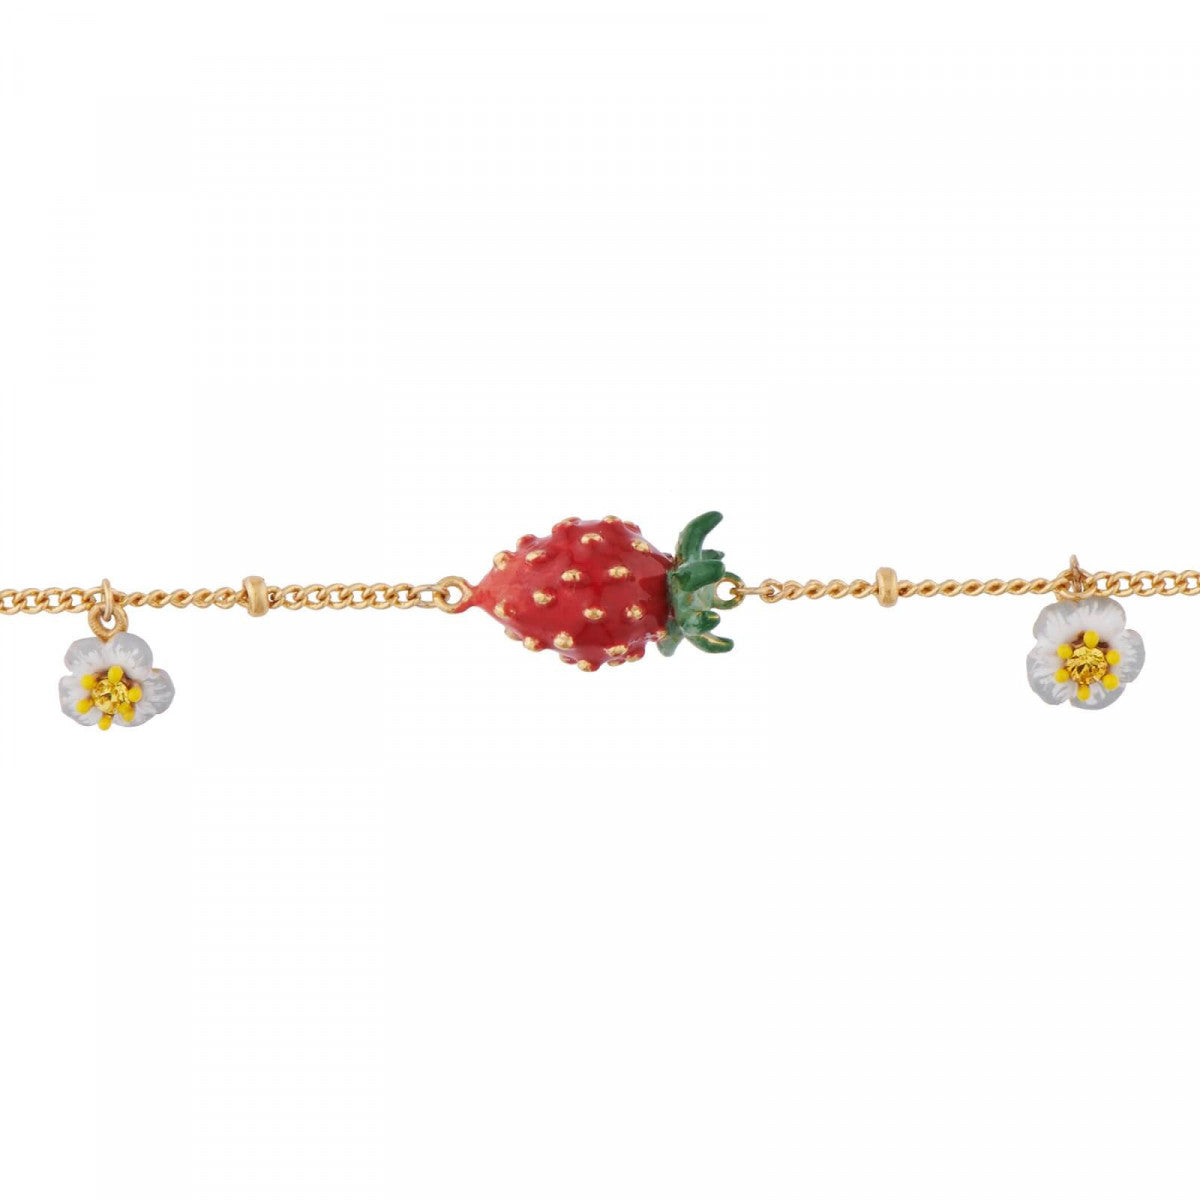 Small Strawberries and White Flowers Bracelet